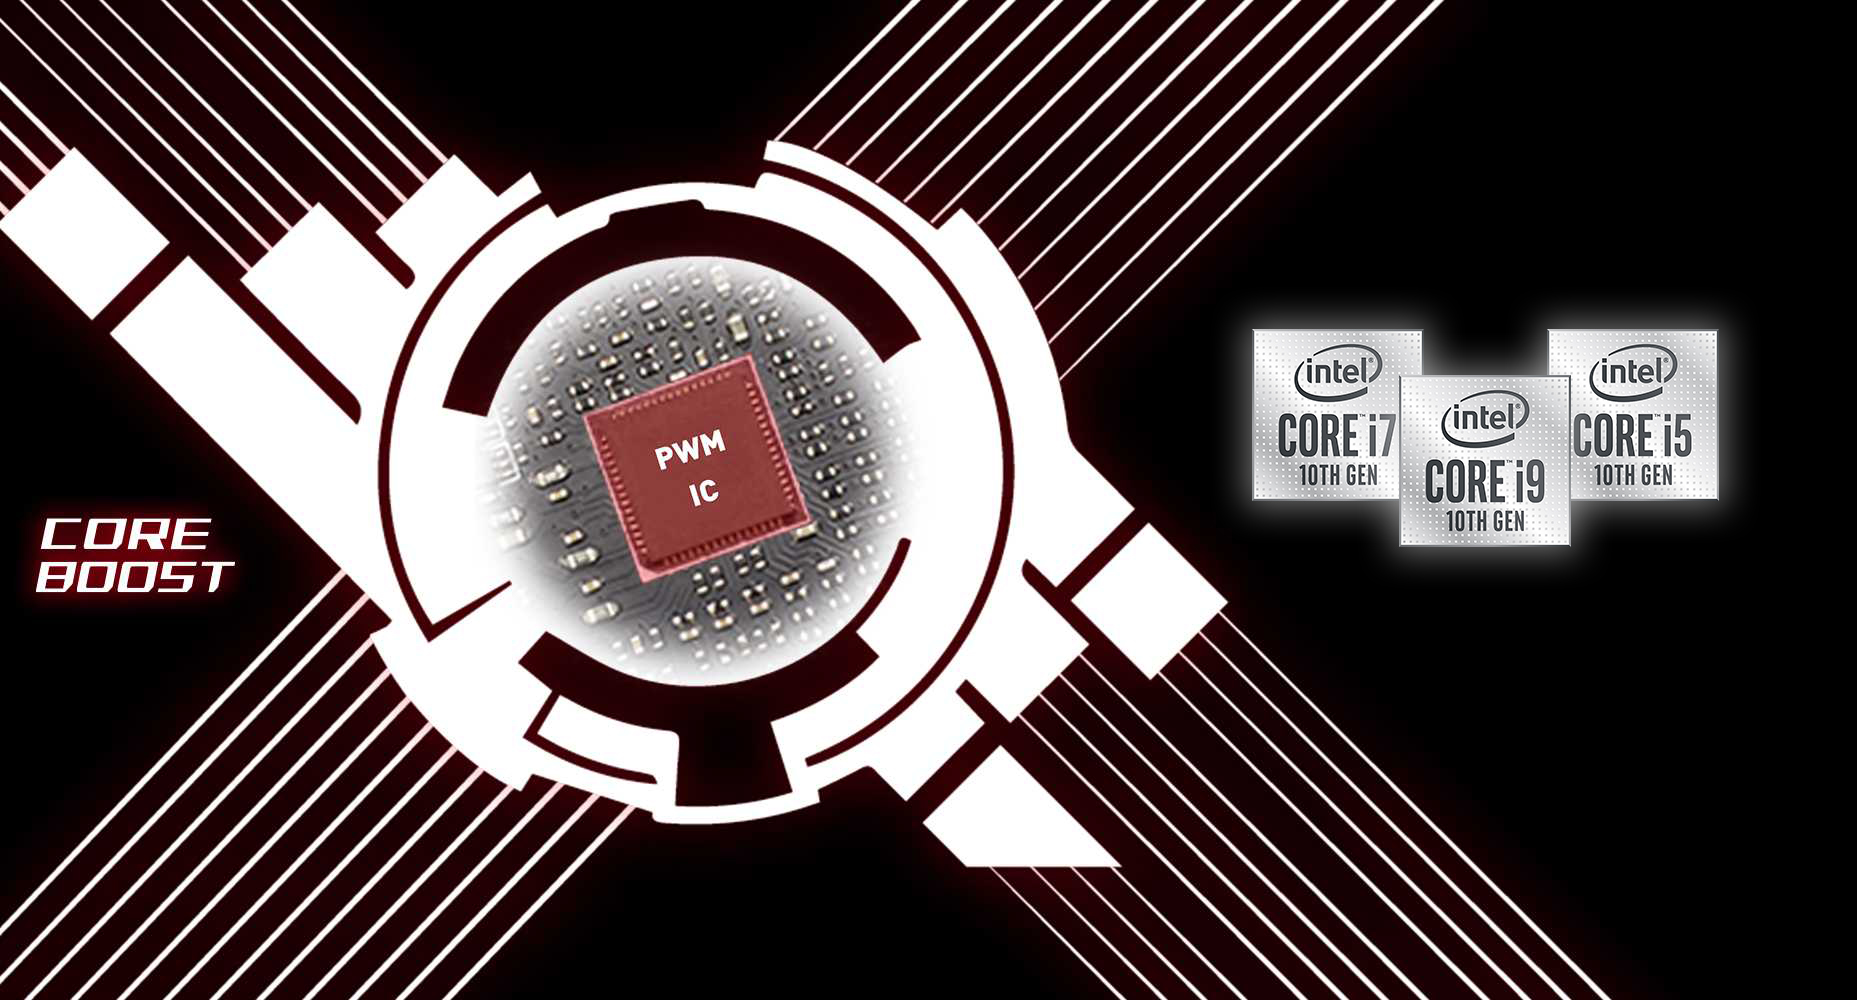 MSI MPG Z490 GAMING CARBON WIFI CORE BOOST